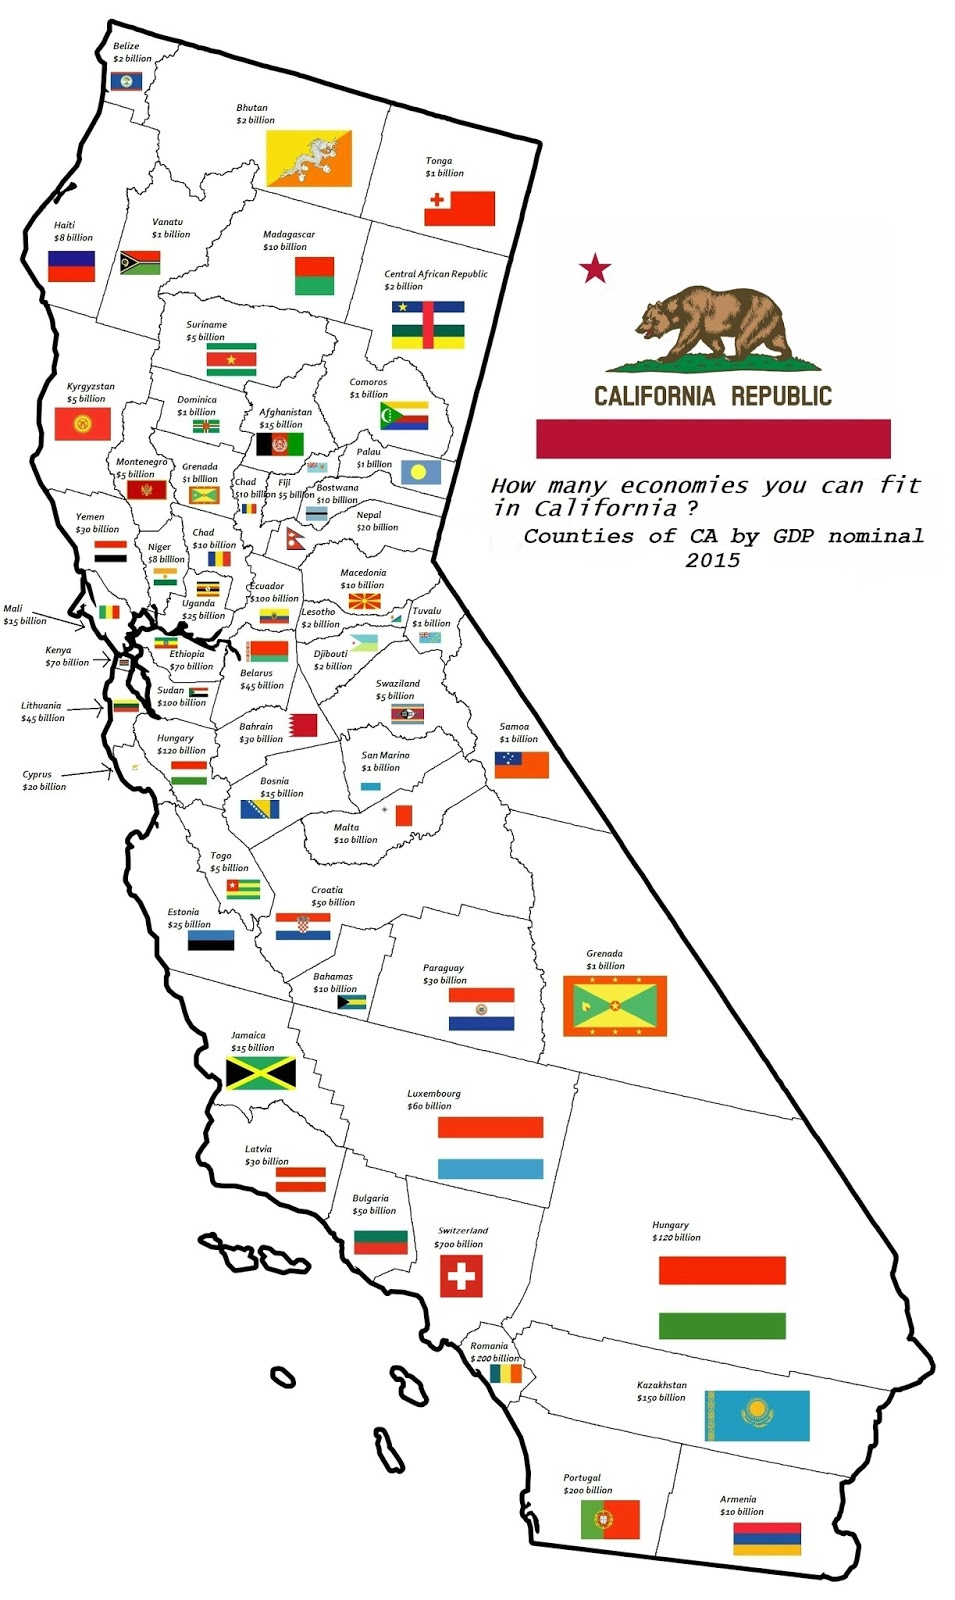 How many economies you can fit in California?